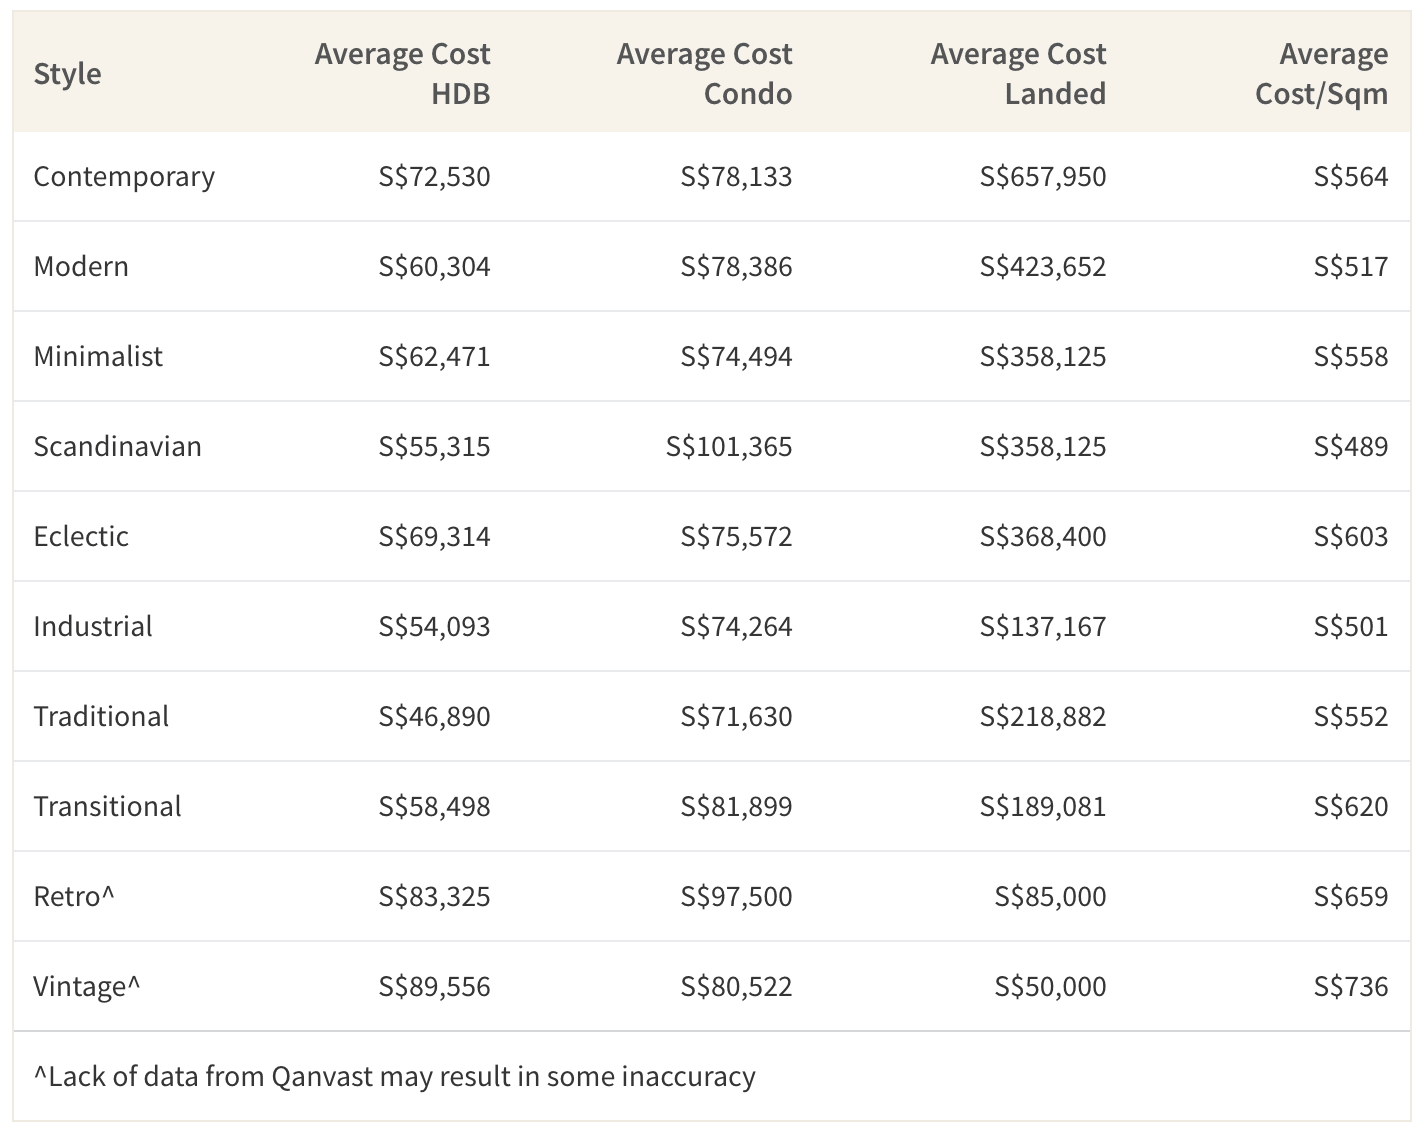 Average Cost of Home Renovation Depending on Style